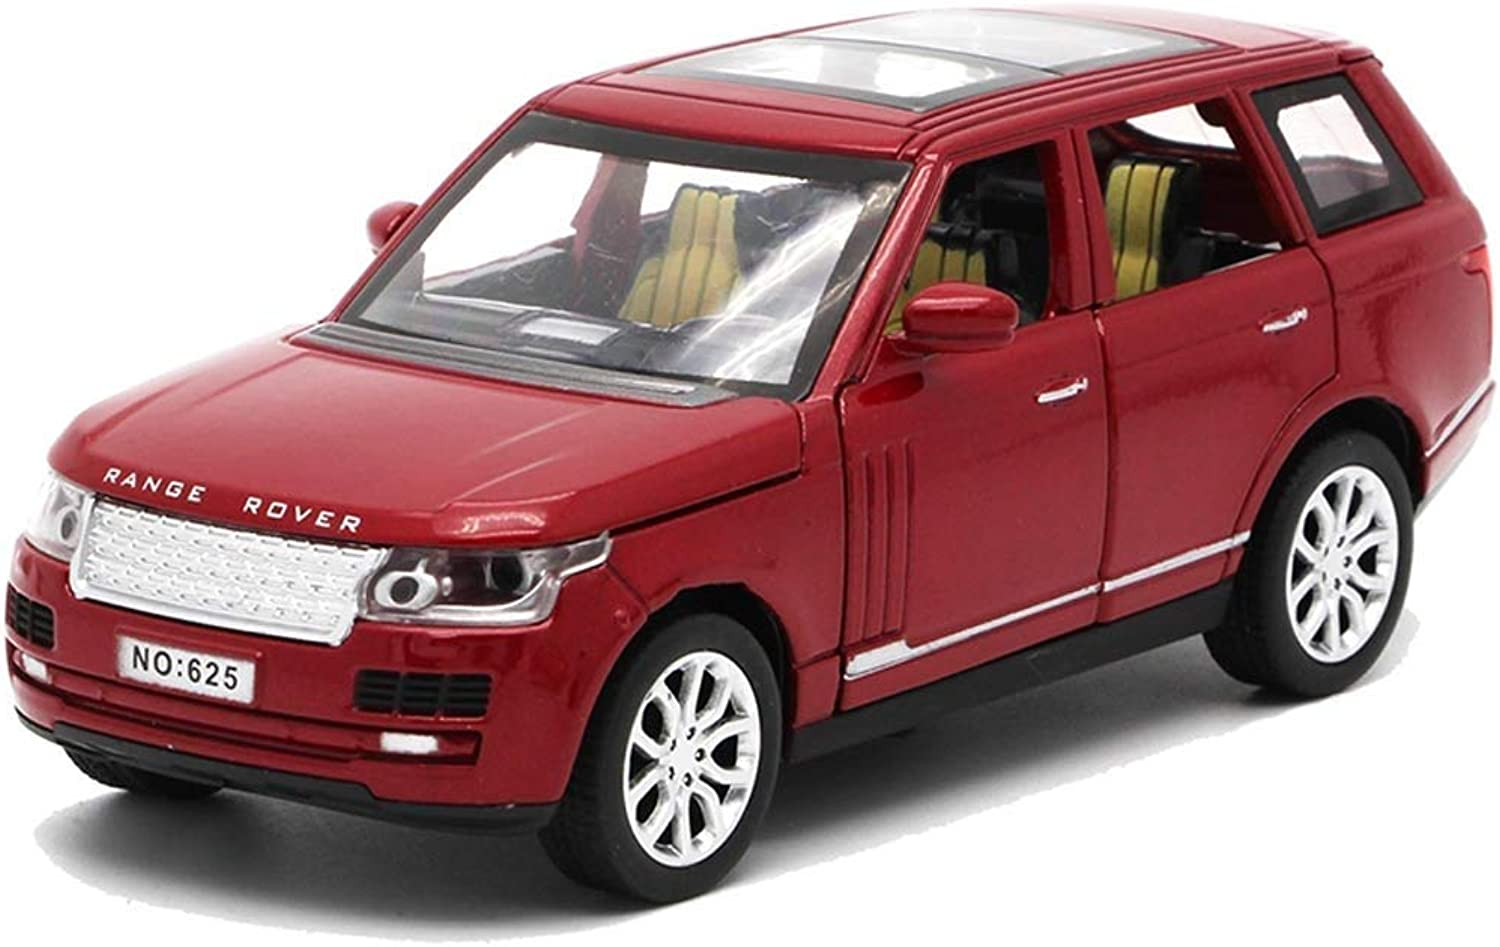 Car Model Car Model 1 32 Simulation Toy car Model Alloy car Model Sound and Light Model car (color   Red)